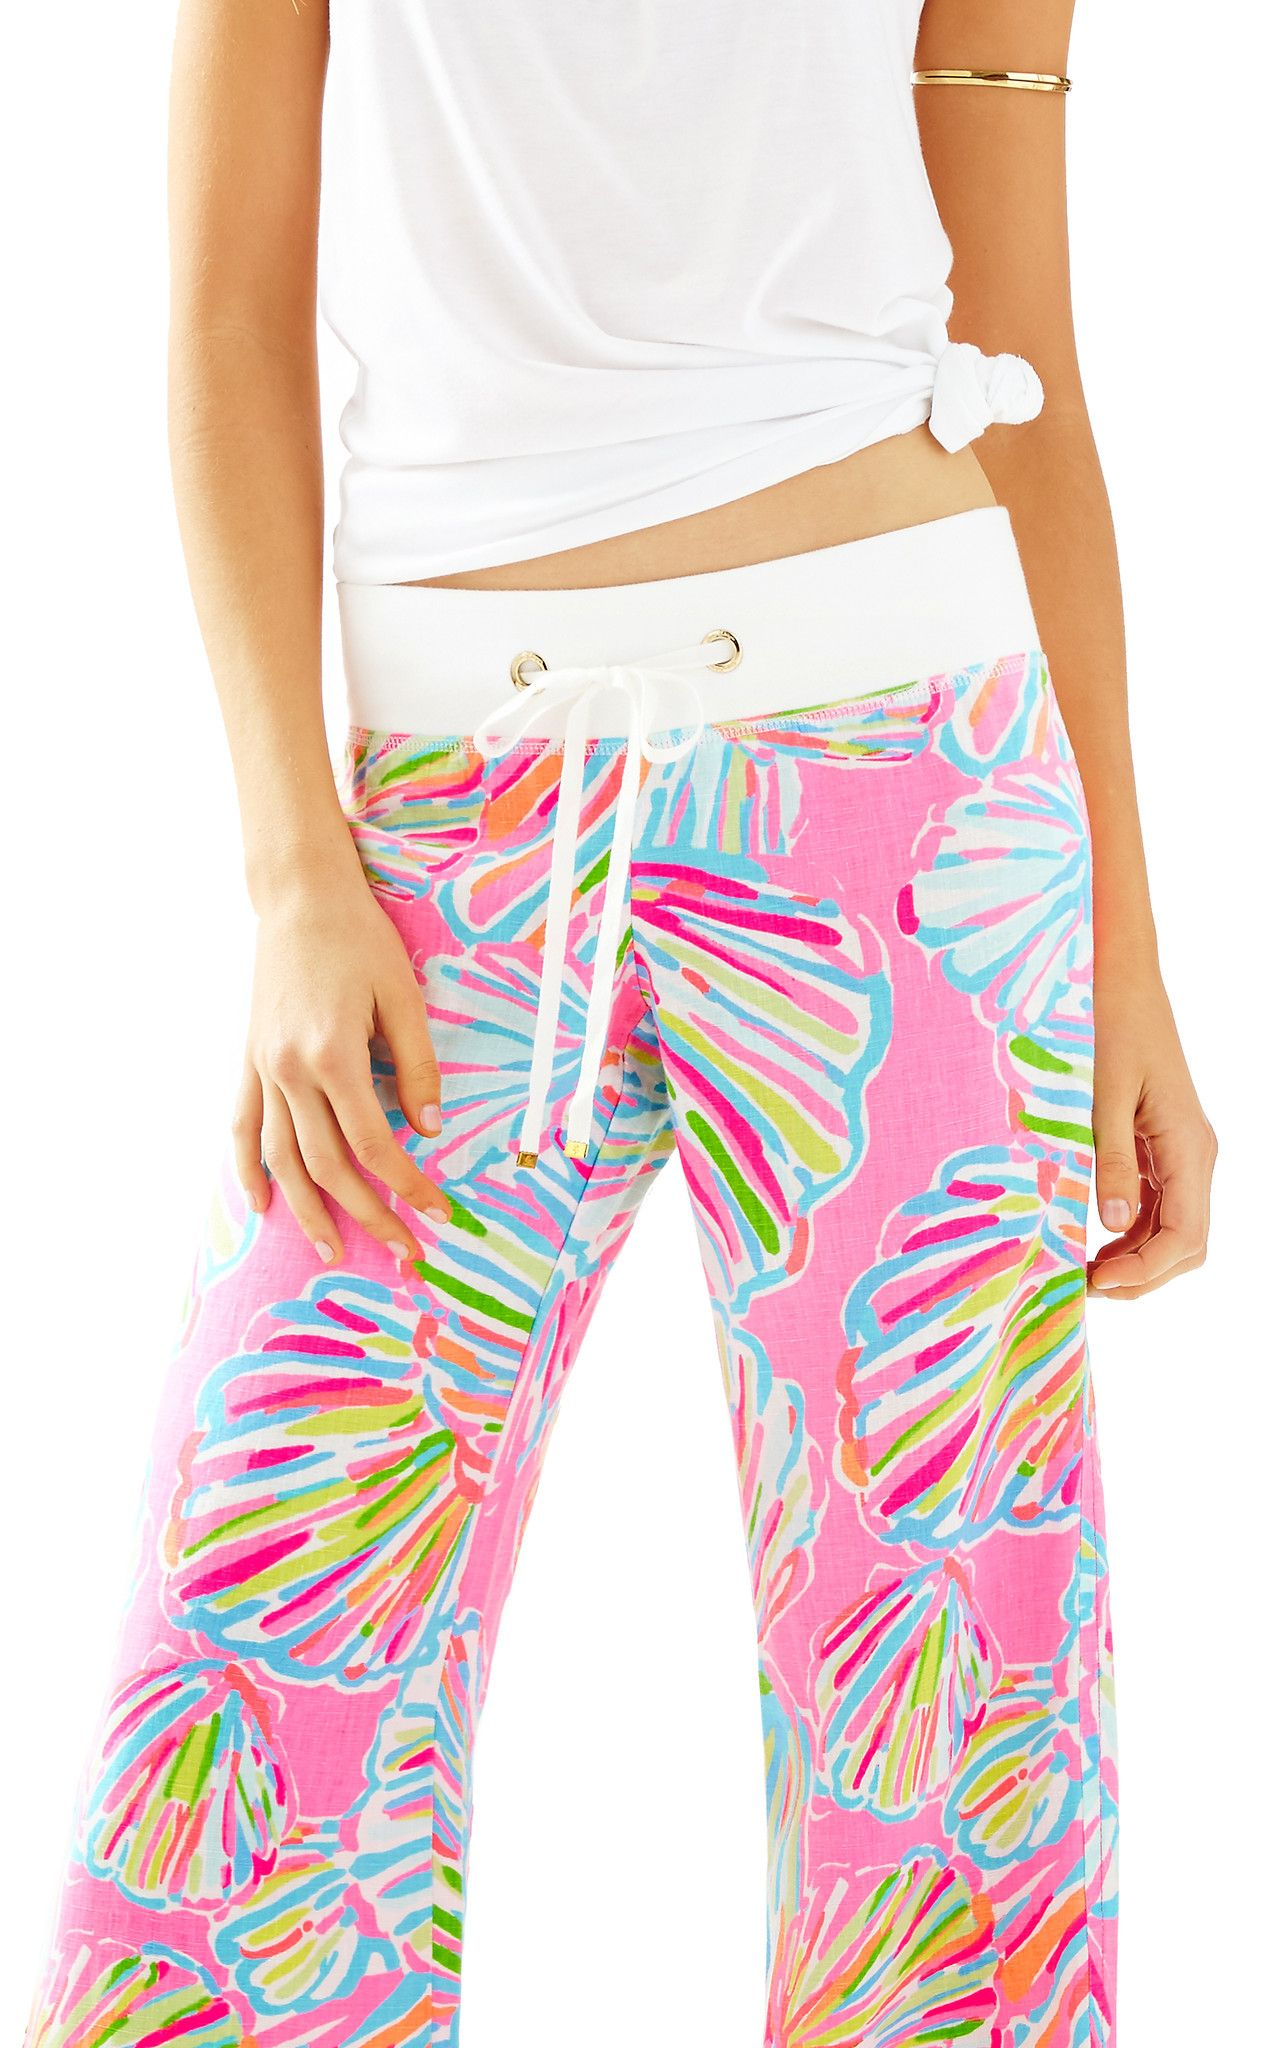 98d42fbb30 BEACH PANT - PINK POUT SHELLABRATE BY LILLY PULITZER | My style ...